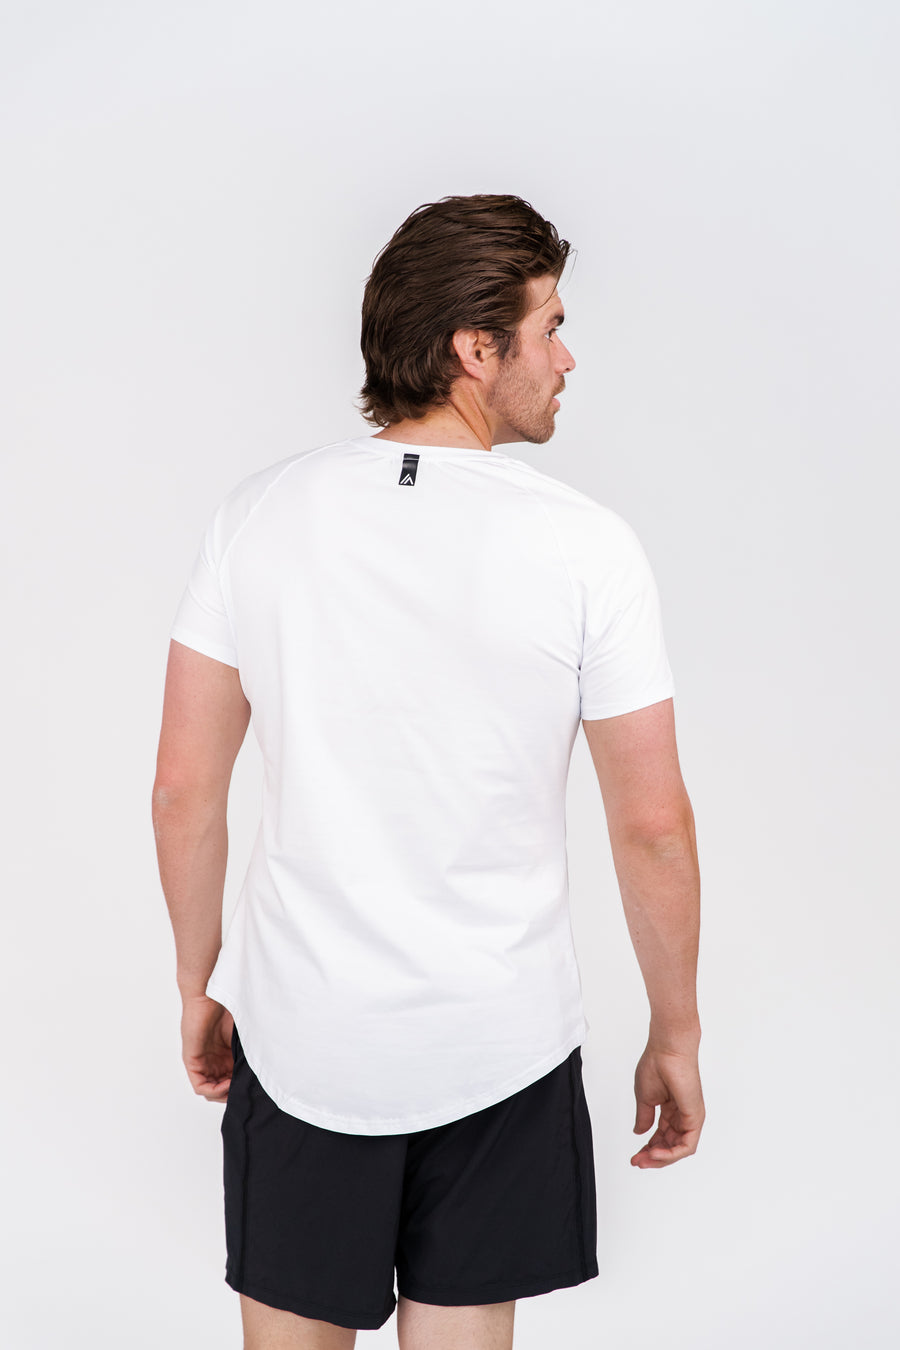 AGILITY T-SHIRT - FROST